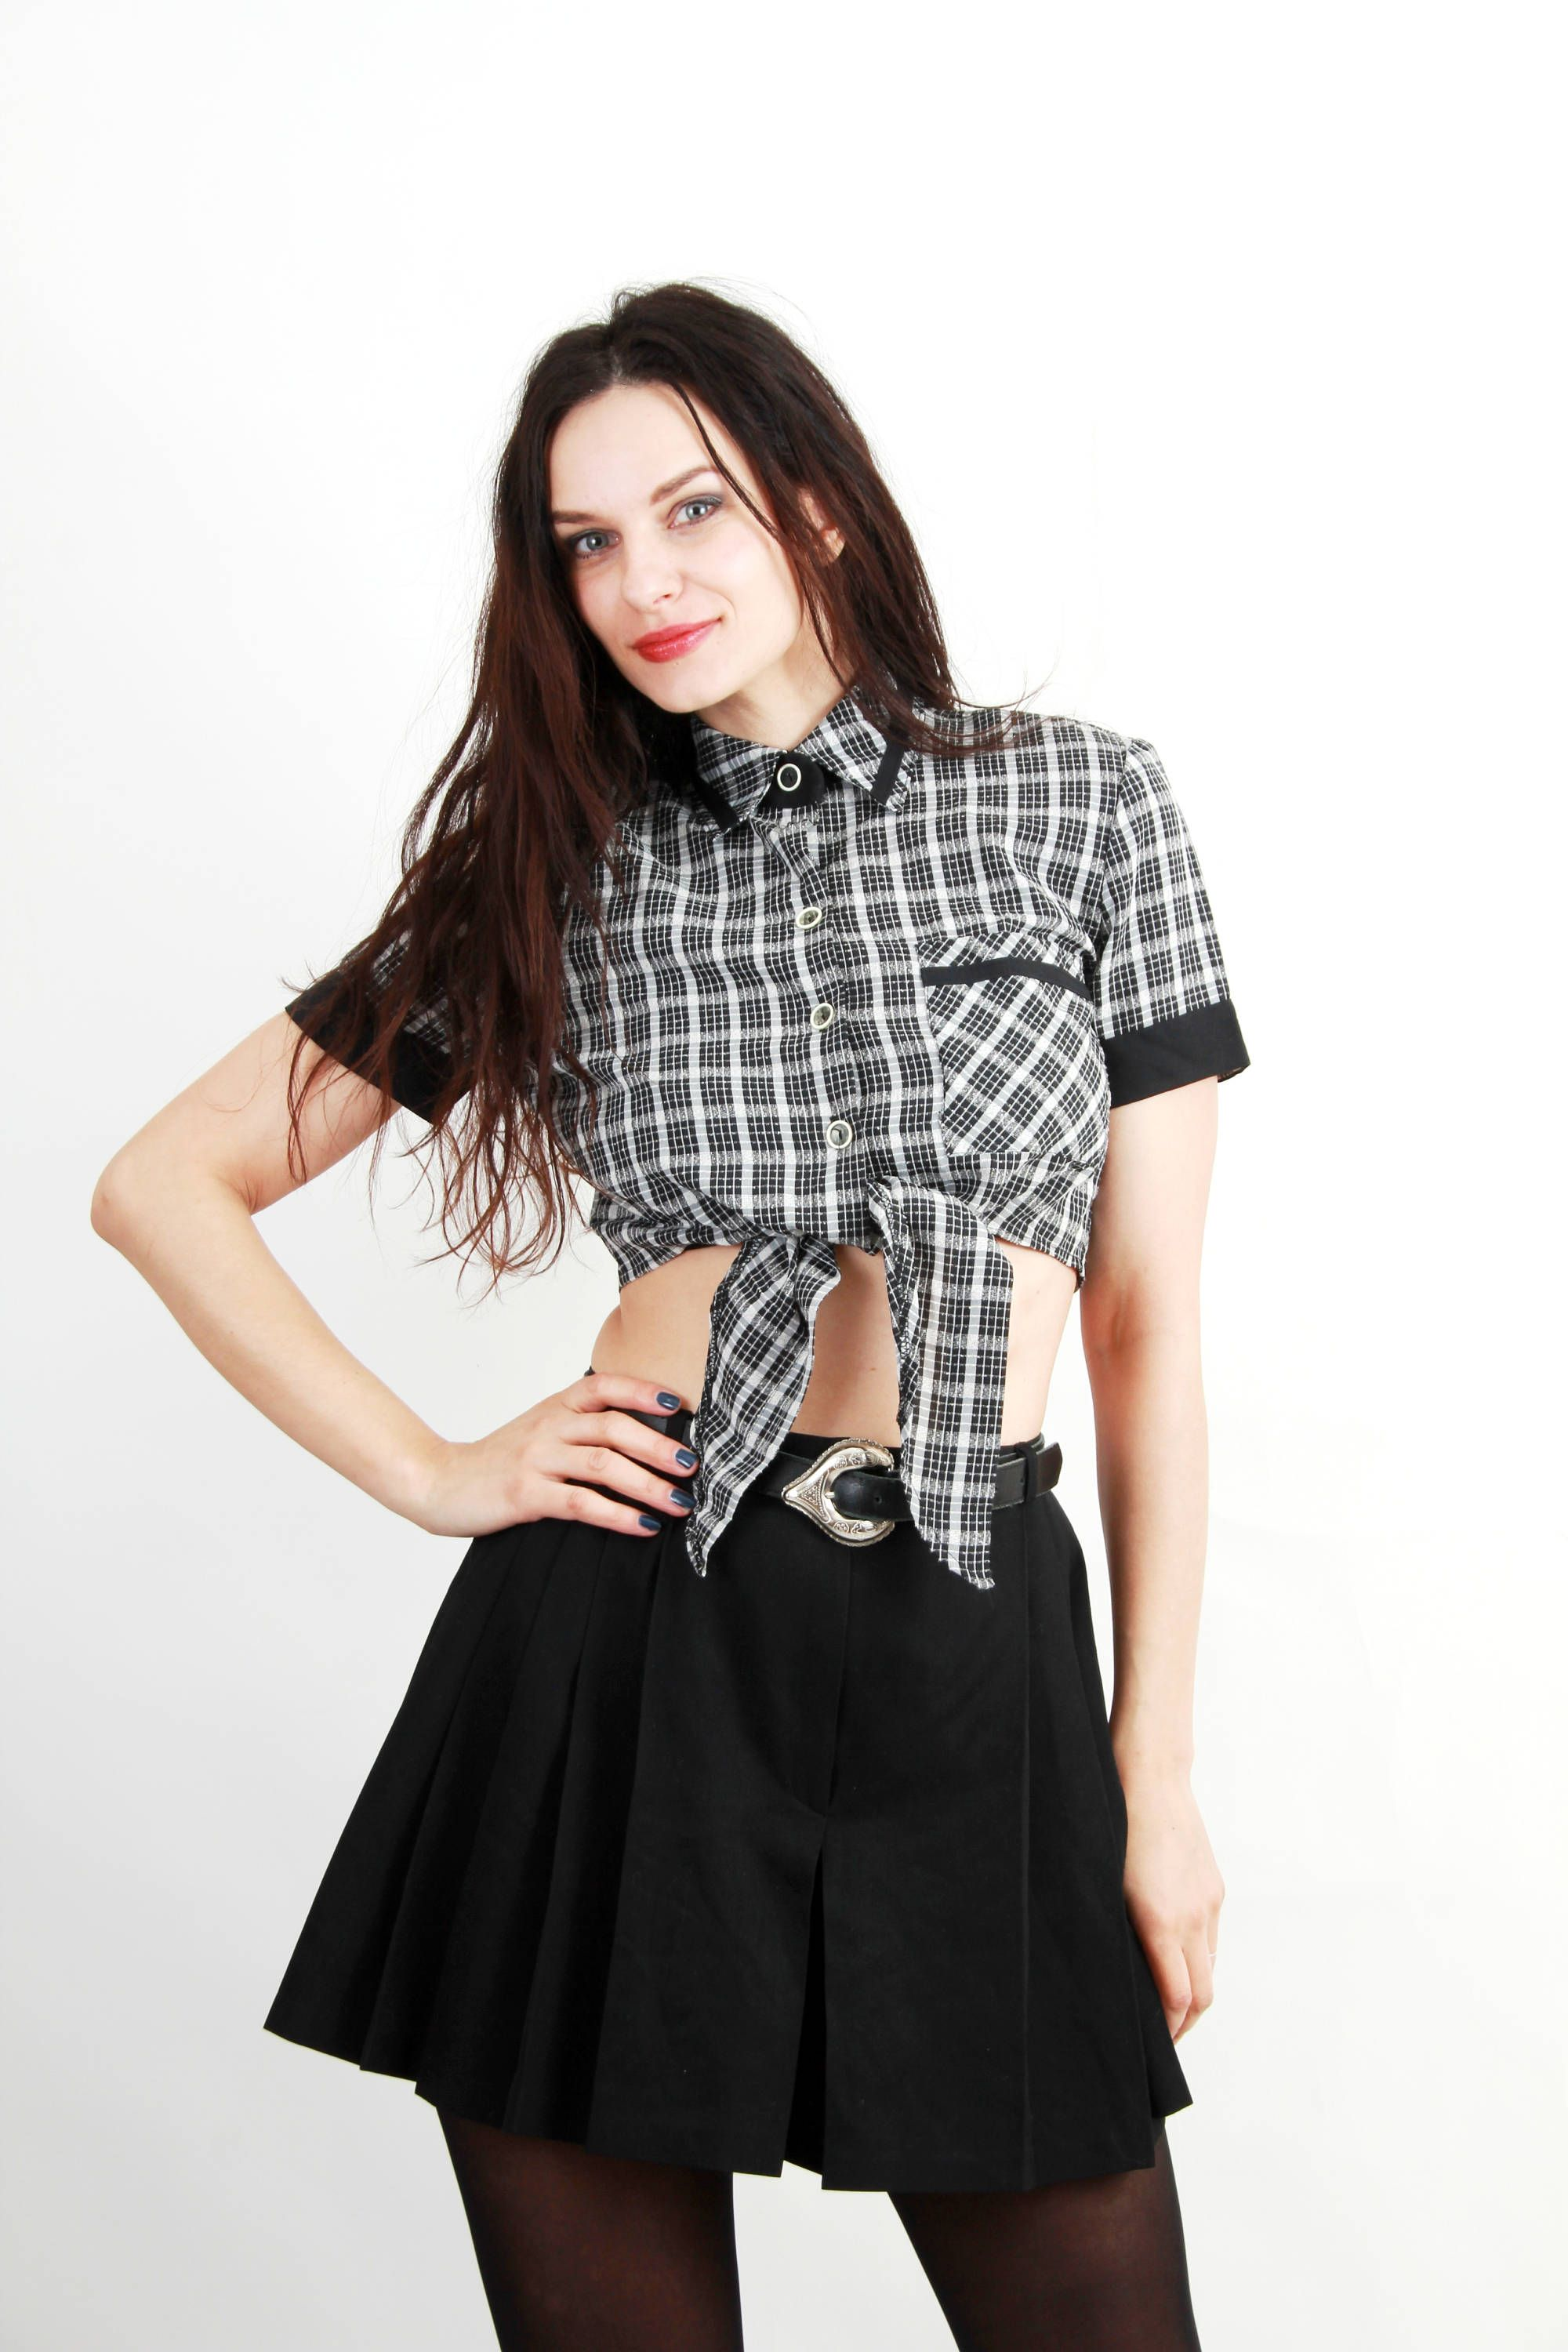 Vintage Plaid Tie Knot Top Cropped Top Tie Knot Blouse Size S